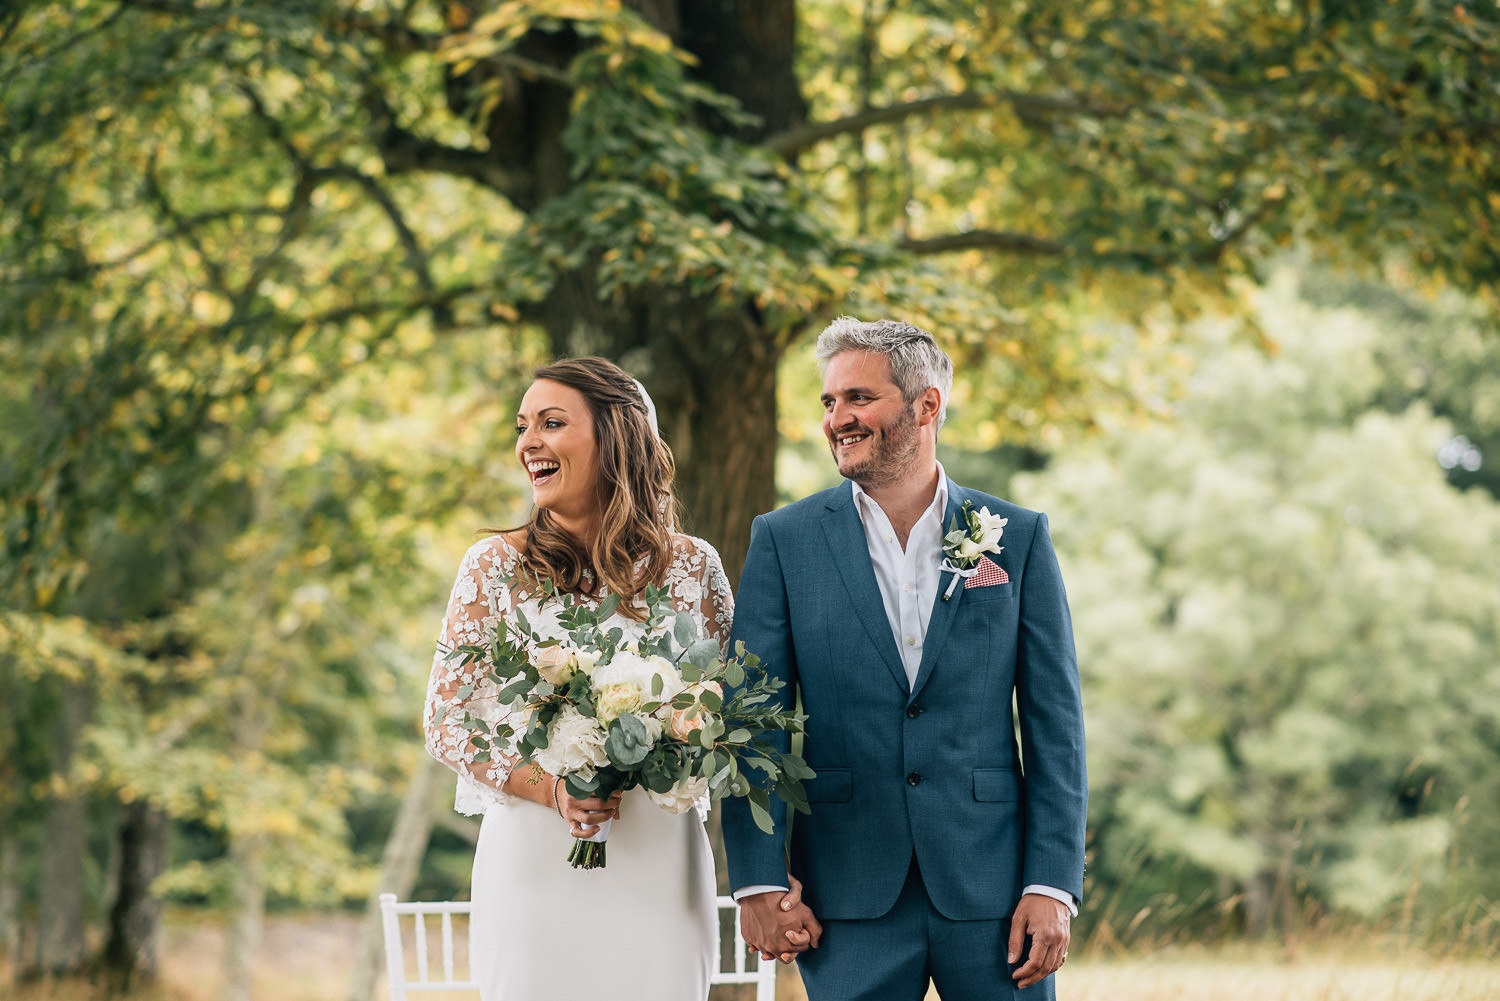 chateau de bourlie wedding photographer by creative and alternative london wedding photographer the shannons photography